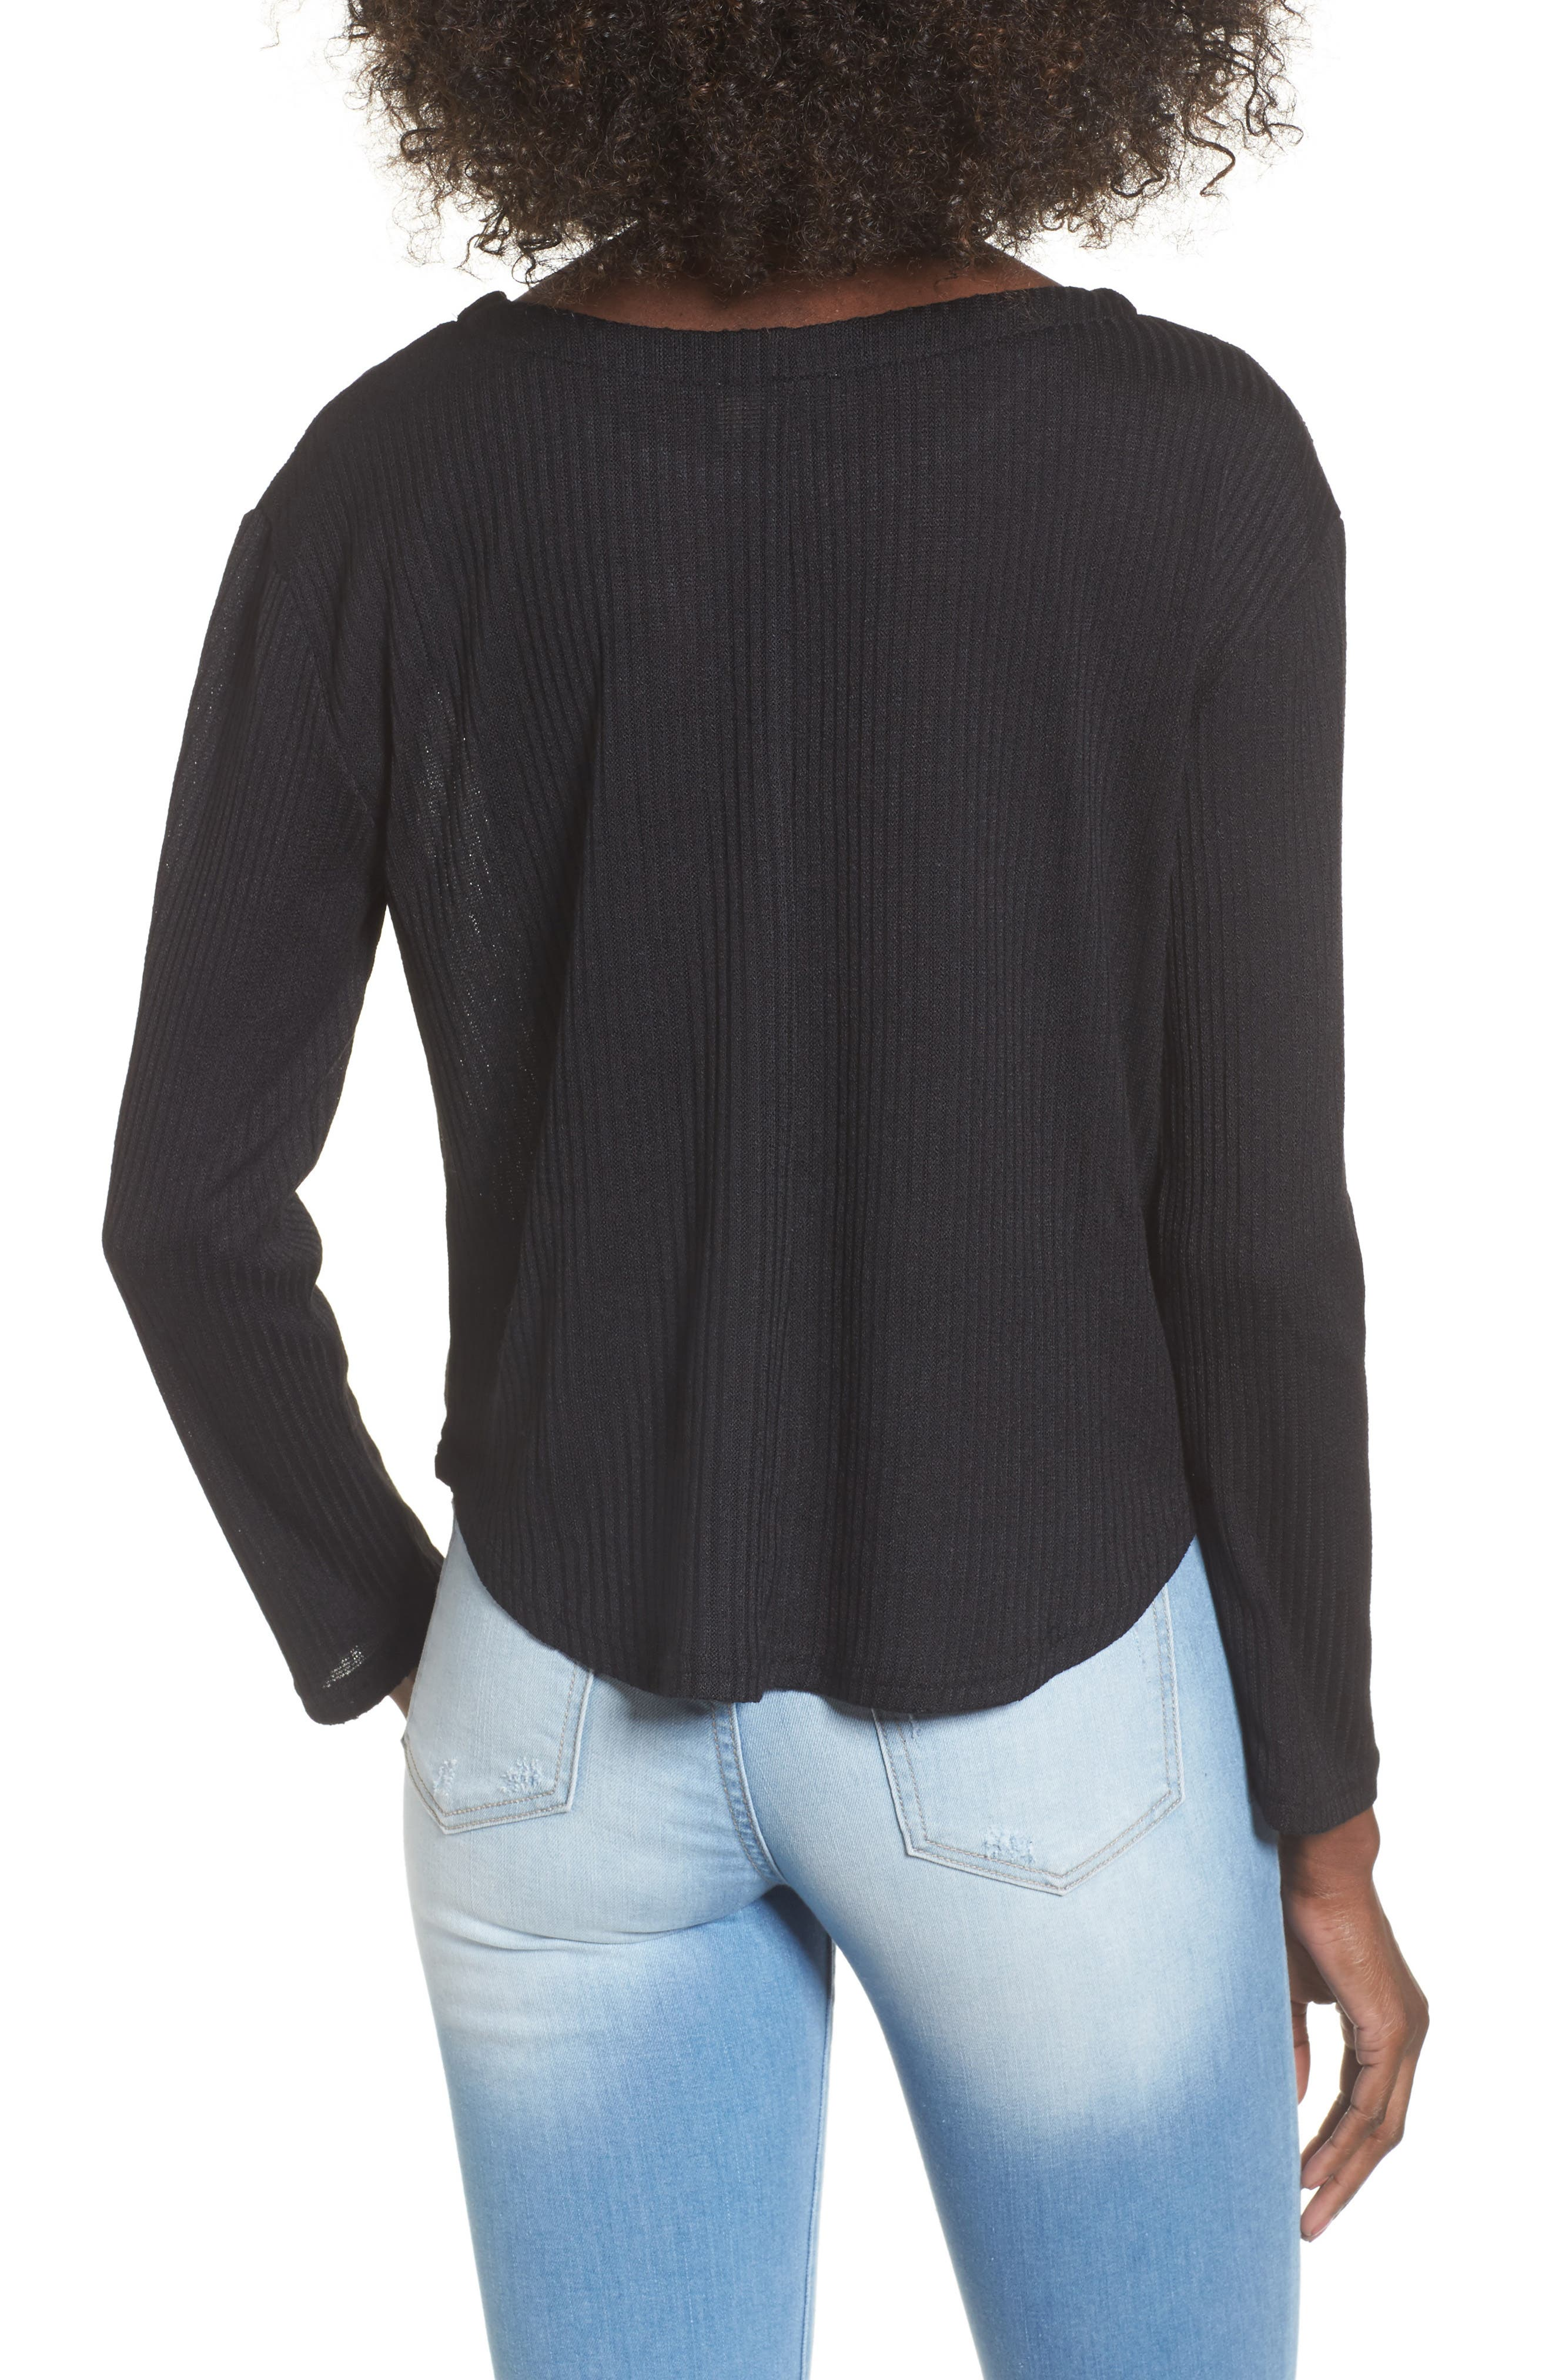 Sparrow Thermal Top,                             Alternate thumbnail 2, color,                             Black